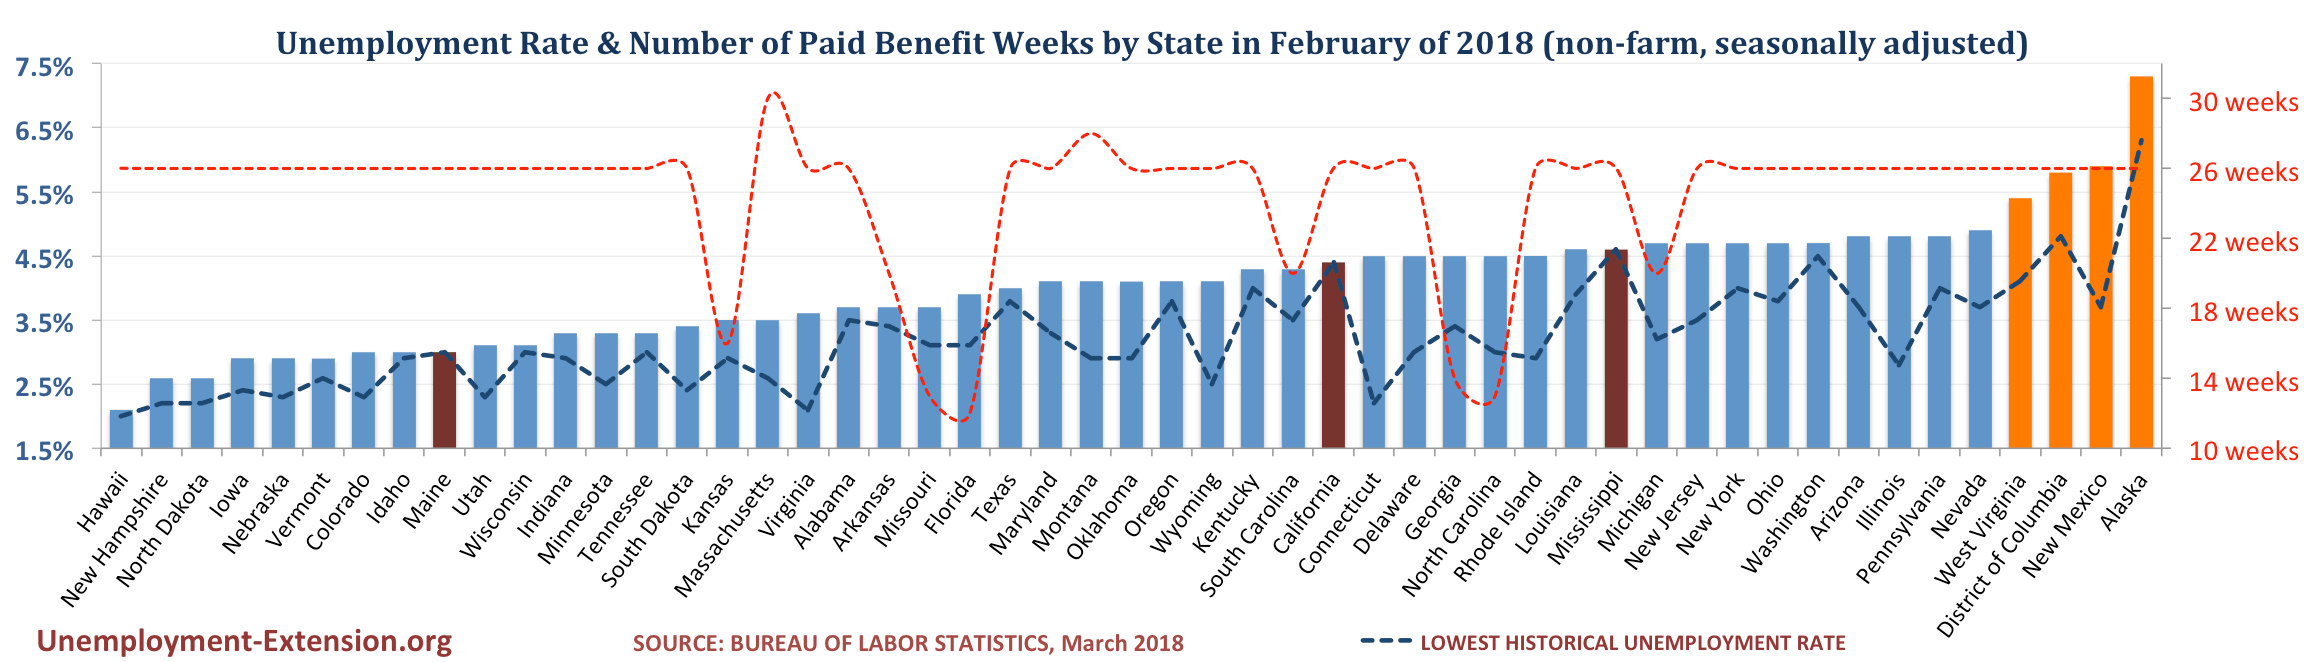 Unemployment Rate and Number of Paid Unemployment Benefit weeks by State (non-farm, seasonally adjusted) in February of 2018